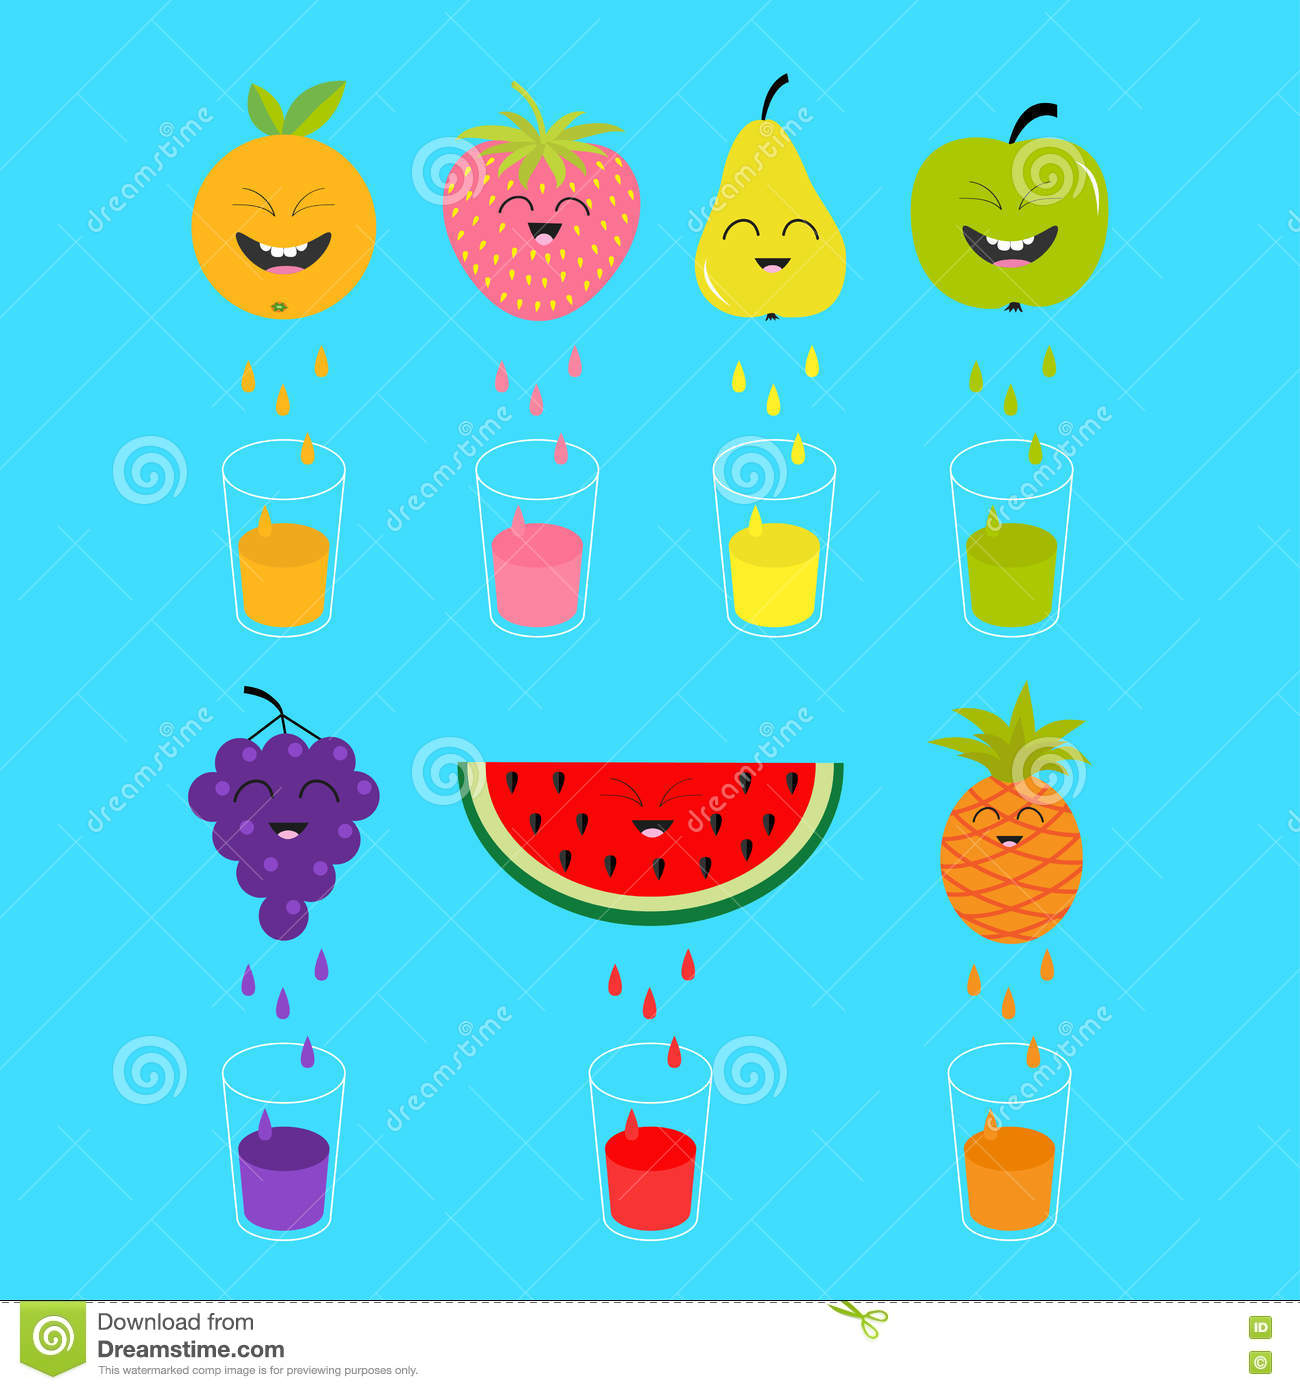 Fresh juice and fruits in hd photos cute babies photos collection - Fresh Juice And Glasses Apple Strawberry Pear Orange Grape Watermelon Pineaple Fruit With Faces Smiling Cute Cartoon Chara